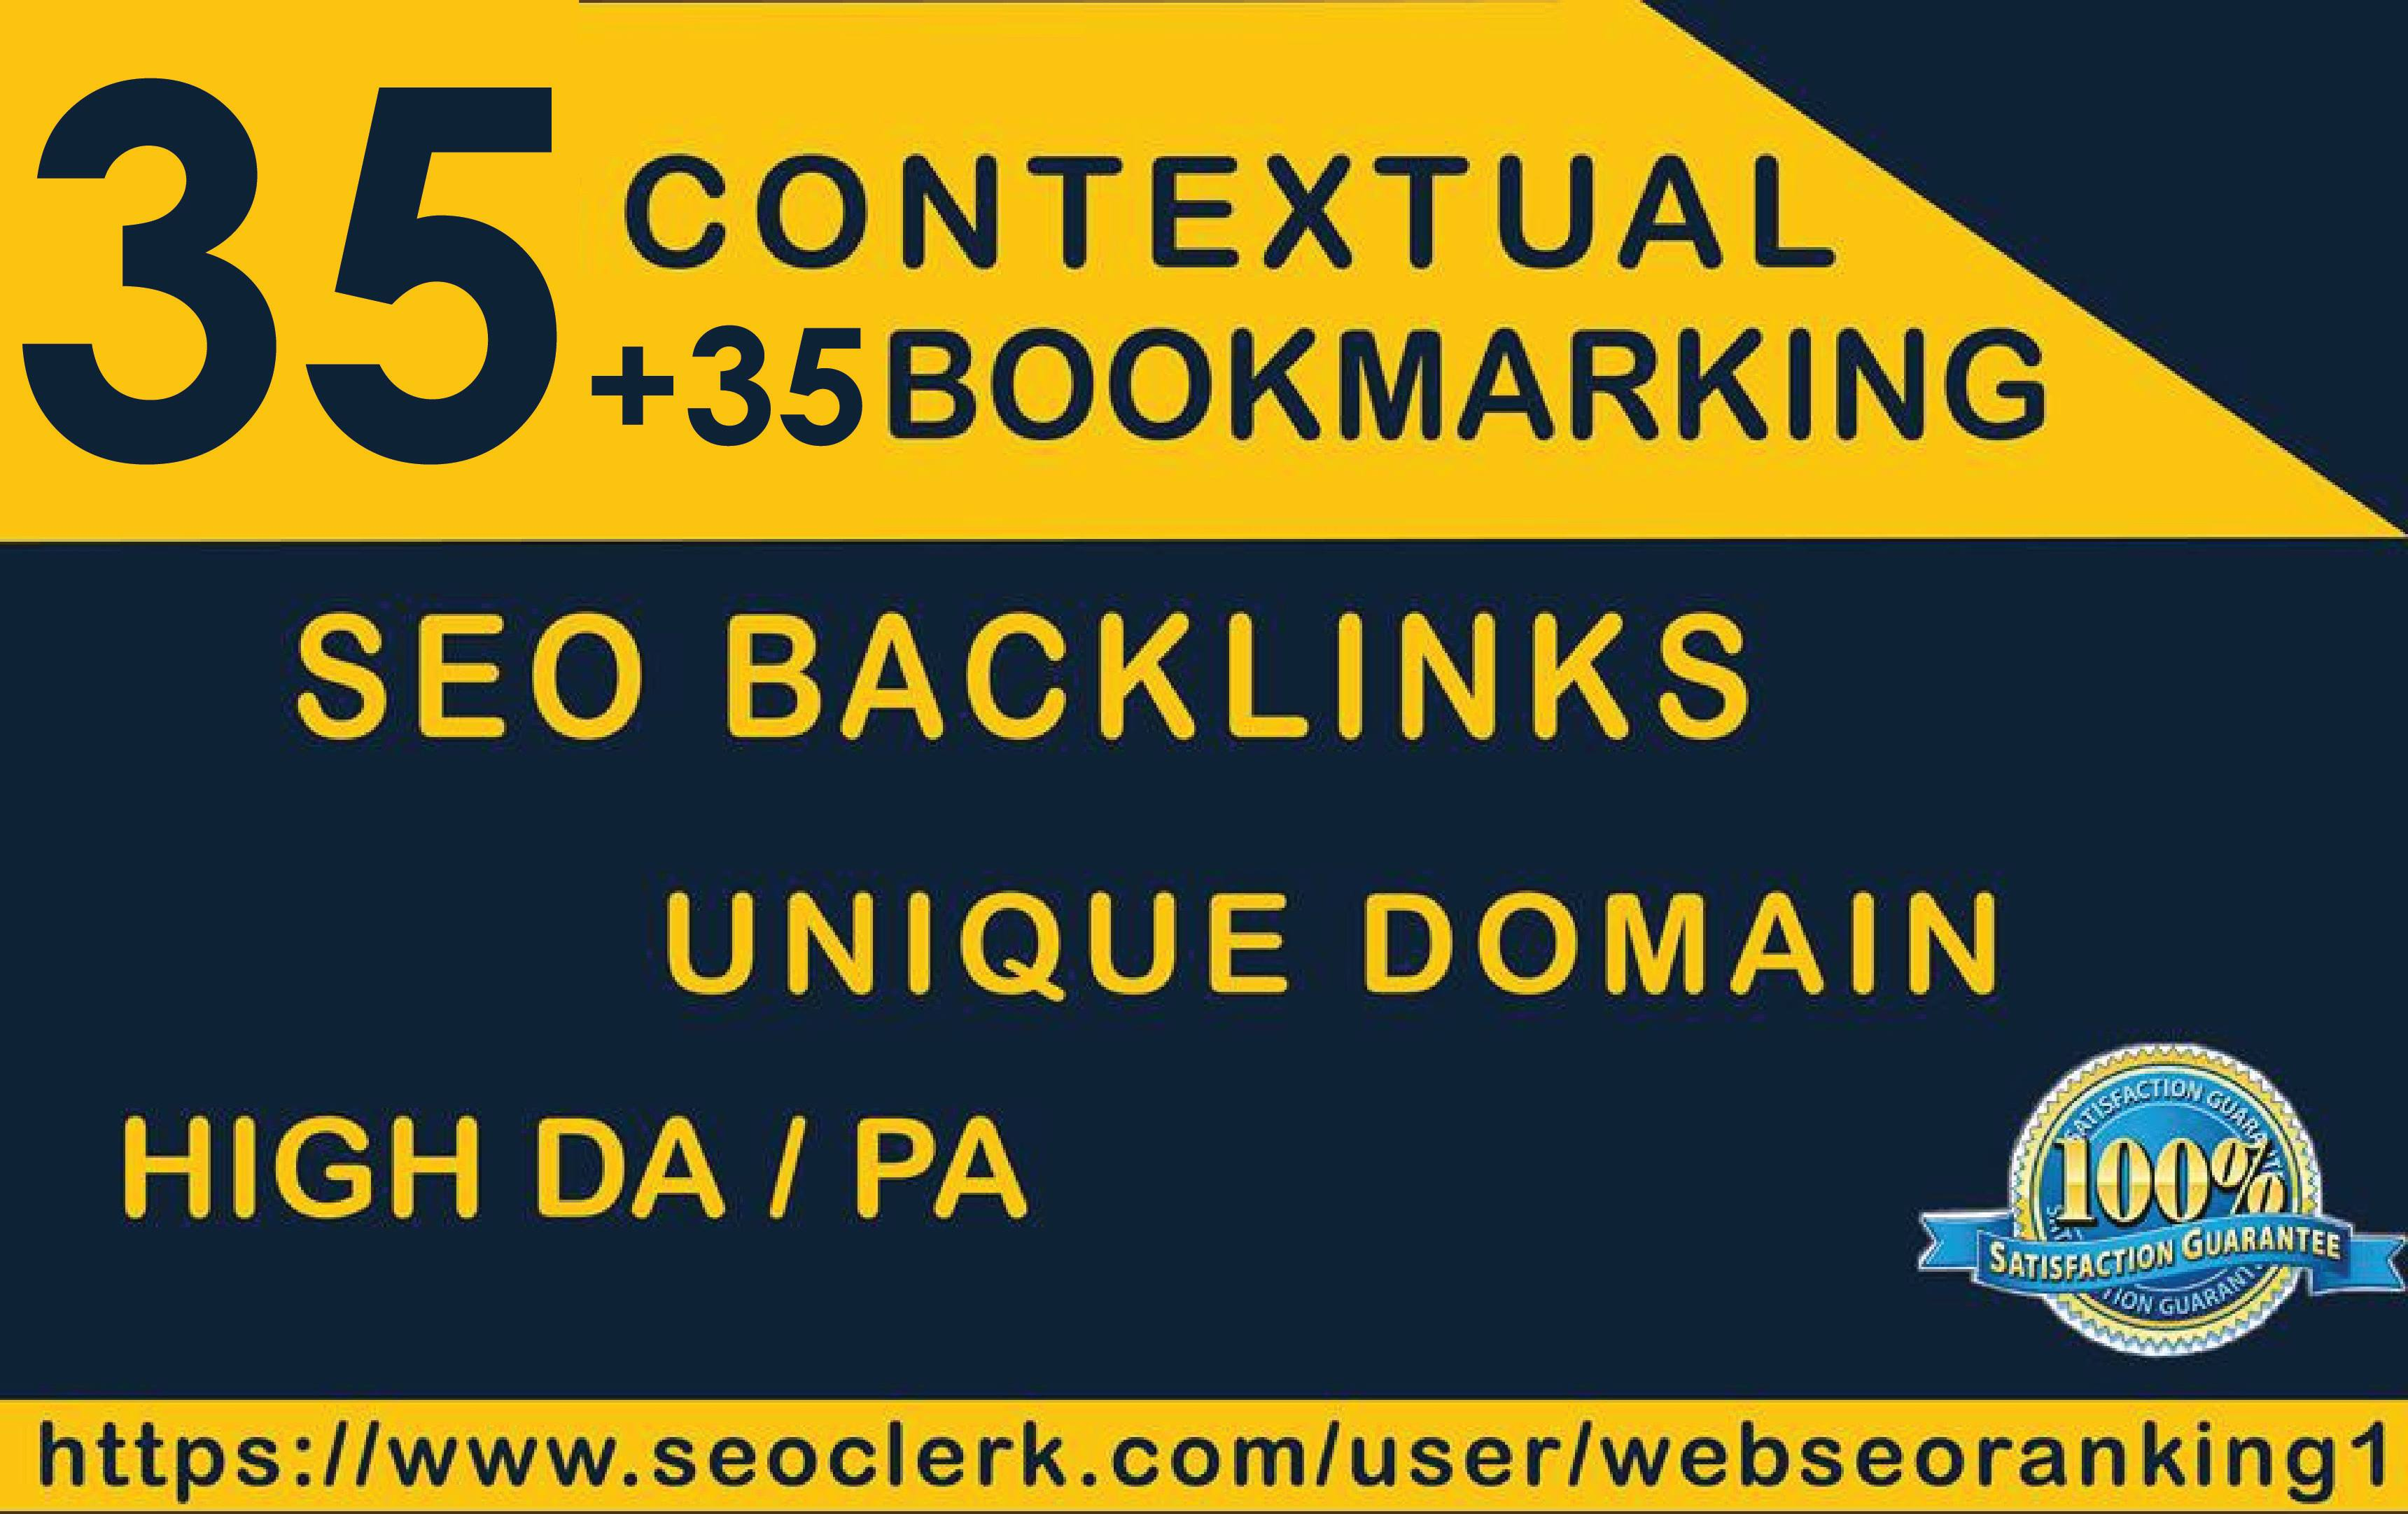 Seo Backlinks  35 Contextual + 35 SOCIAL Bookmaking Unique Domain